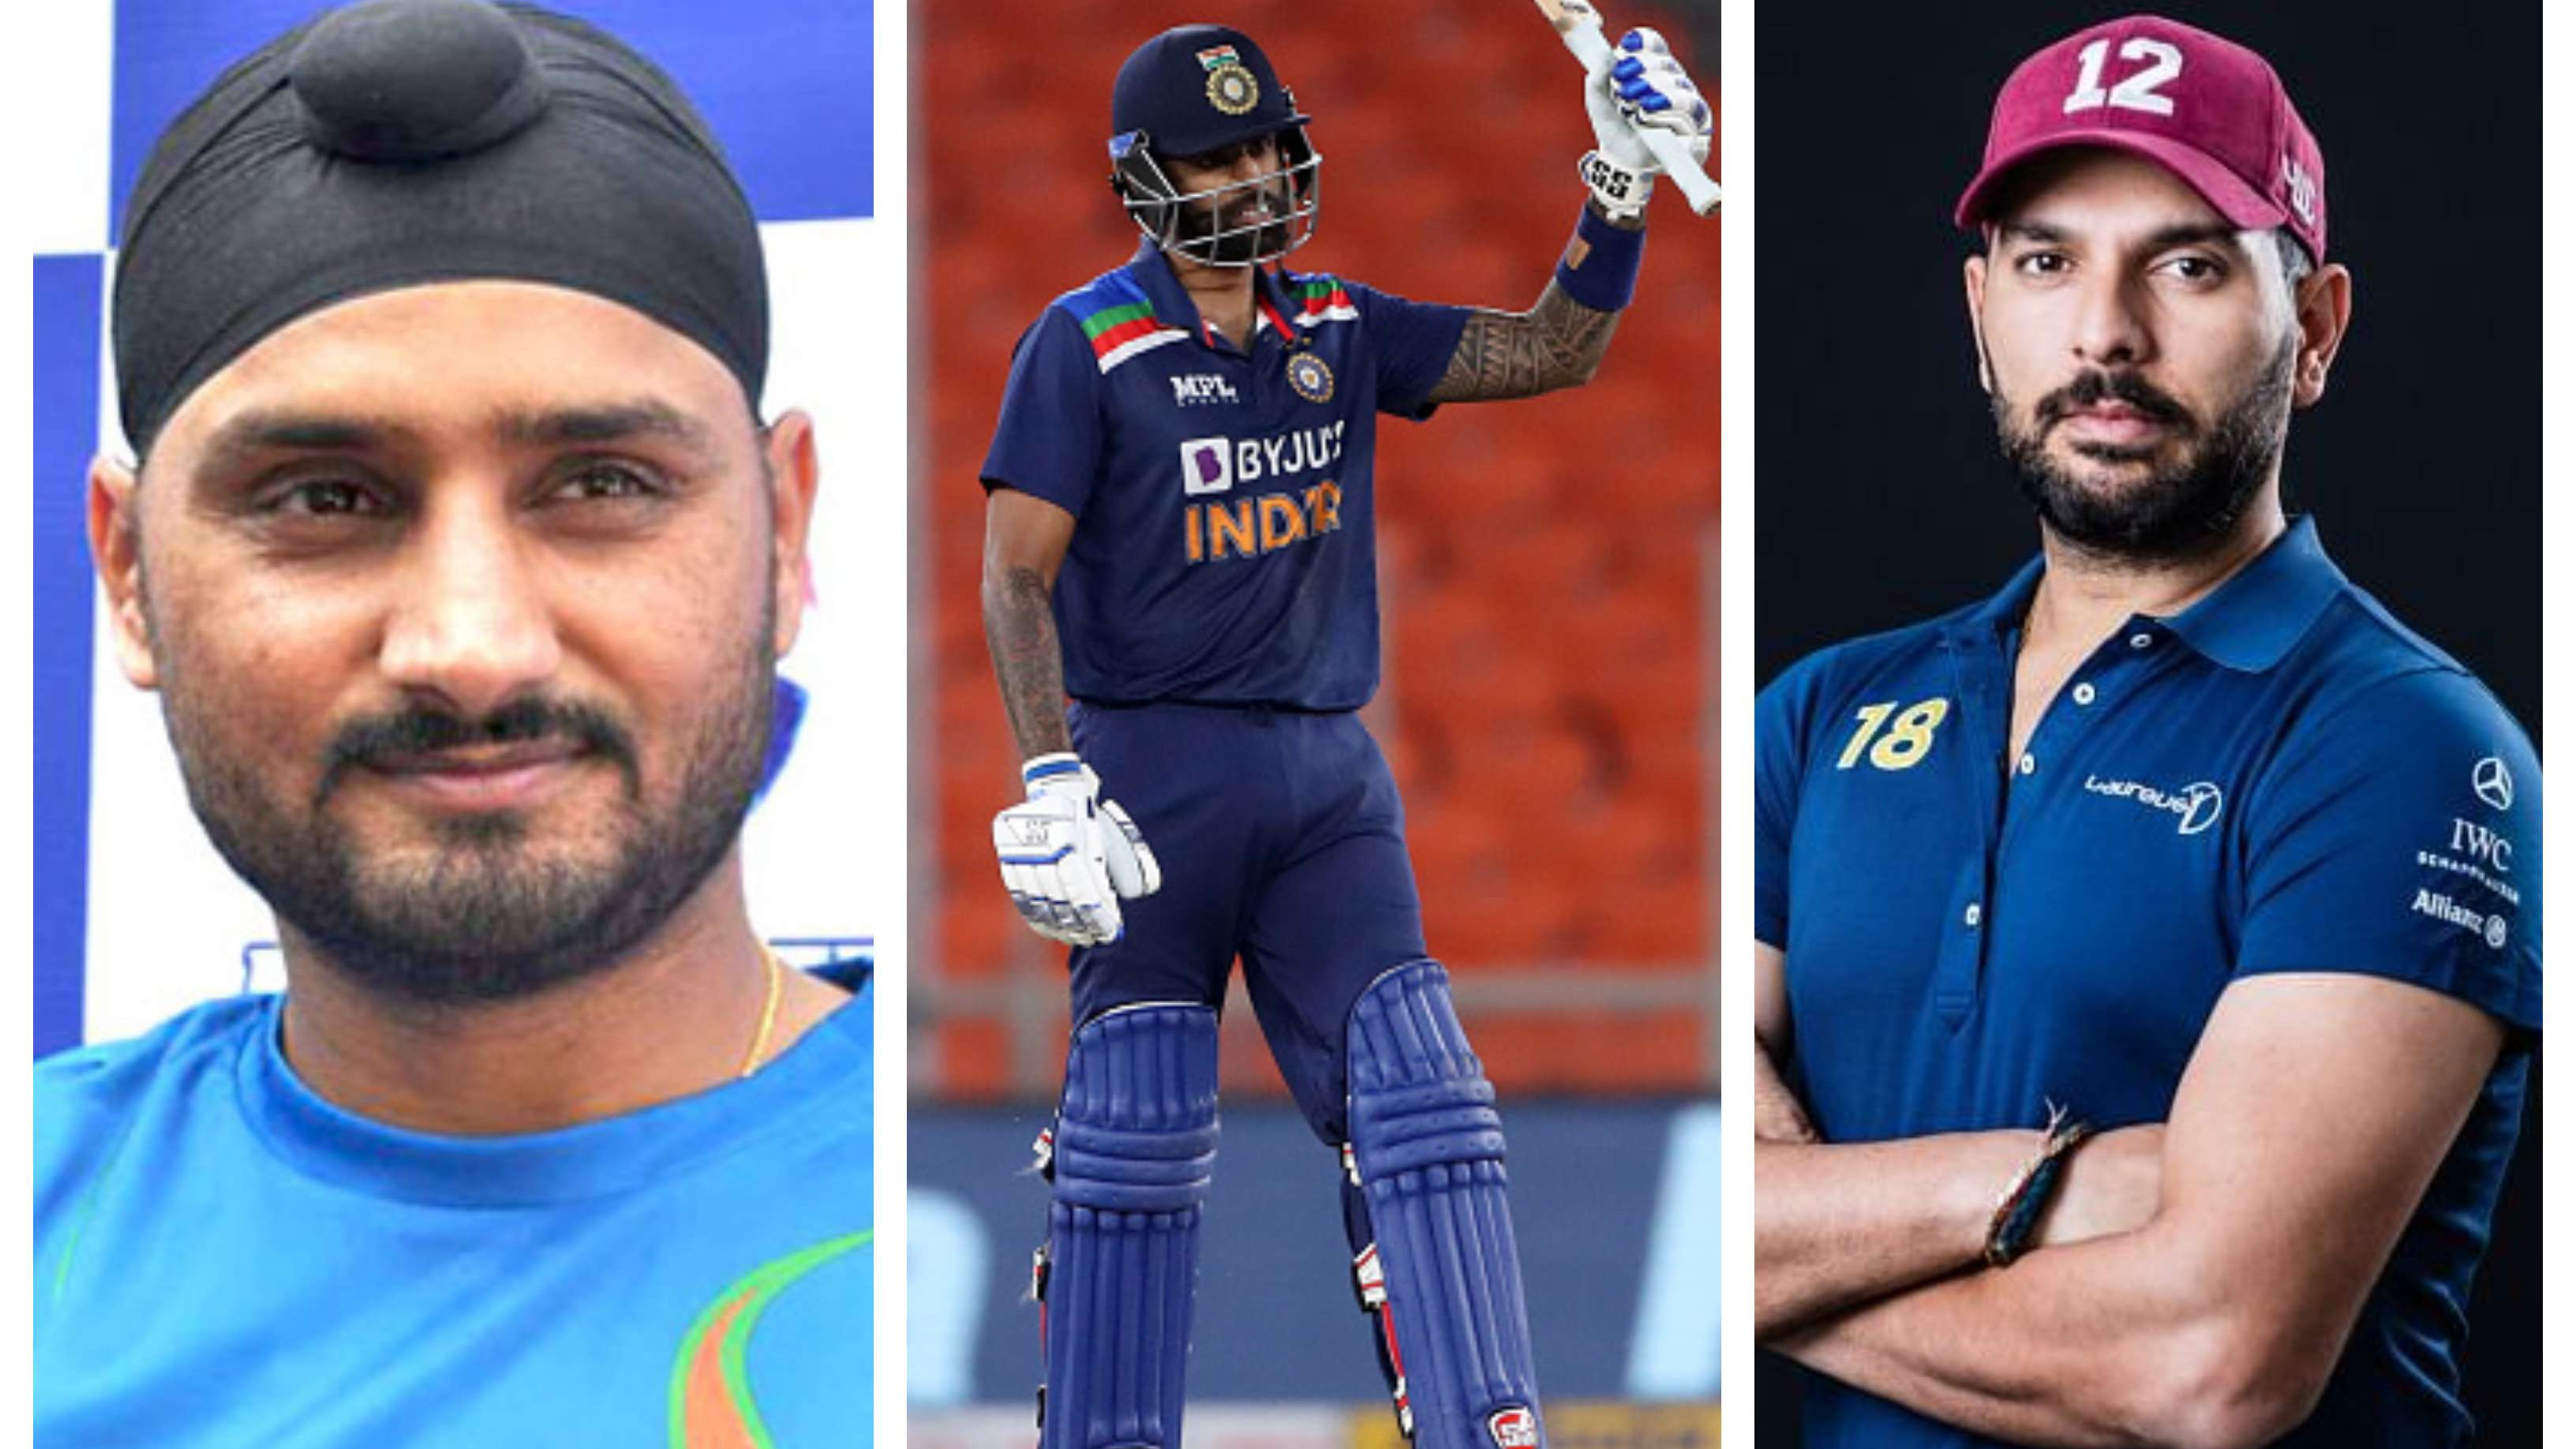 IND v ENG 2021: Indian cricket fraternity lauds Suryakumar Yadav for his dazzling half-century in 4th T20I